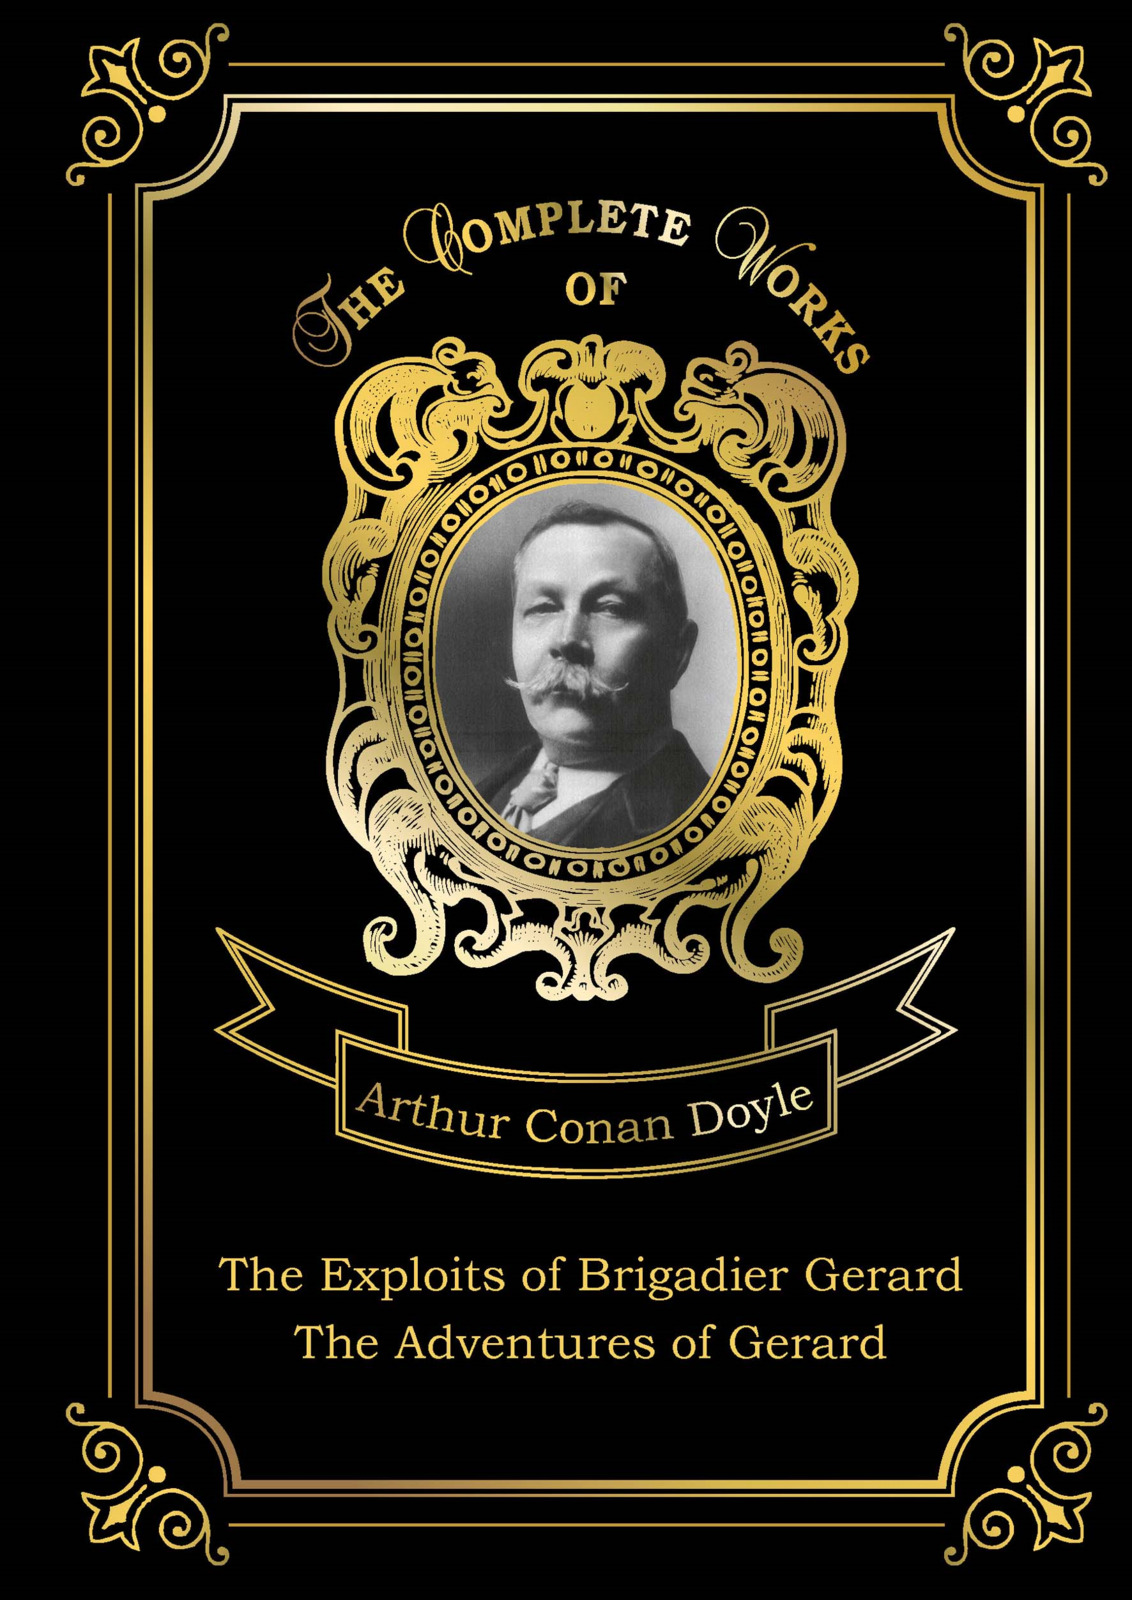 Arthur Conan Doyle The Exploits of Brigadier Gerard: The Adventures of Gerard skil рубанок skil 1550 la 450вт 60мм 16000об мин